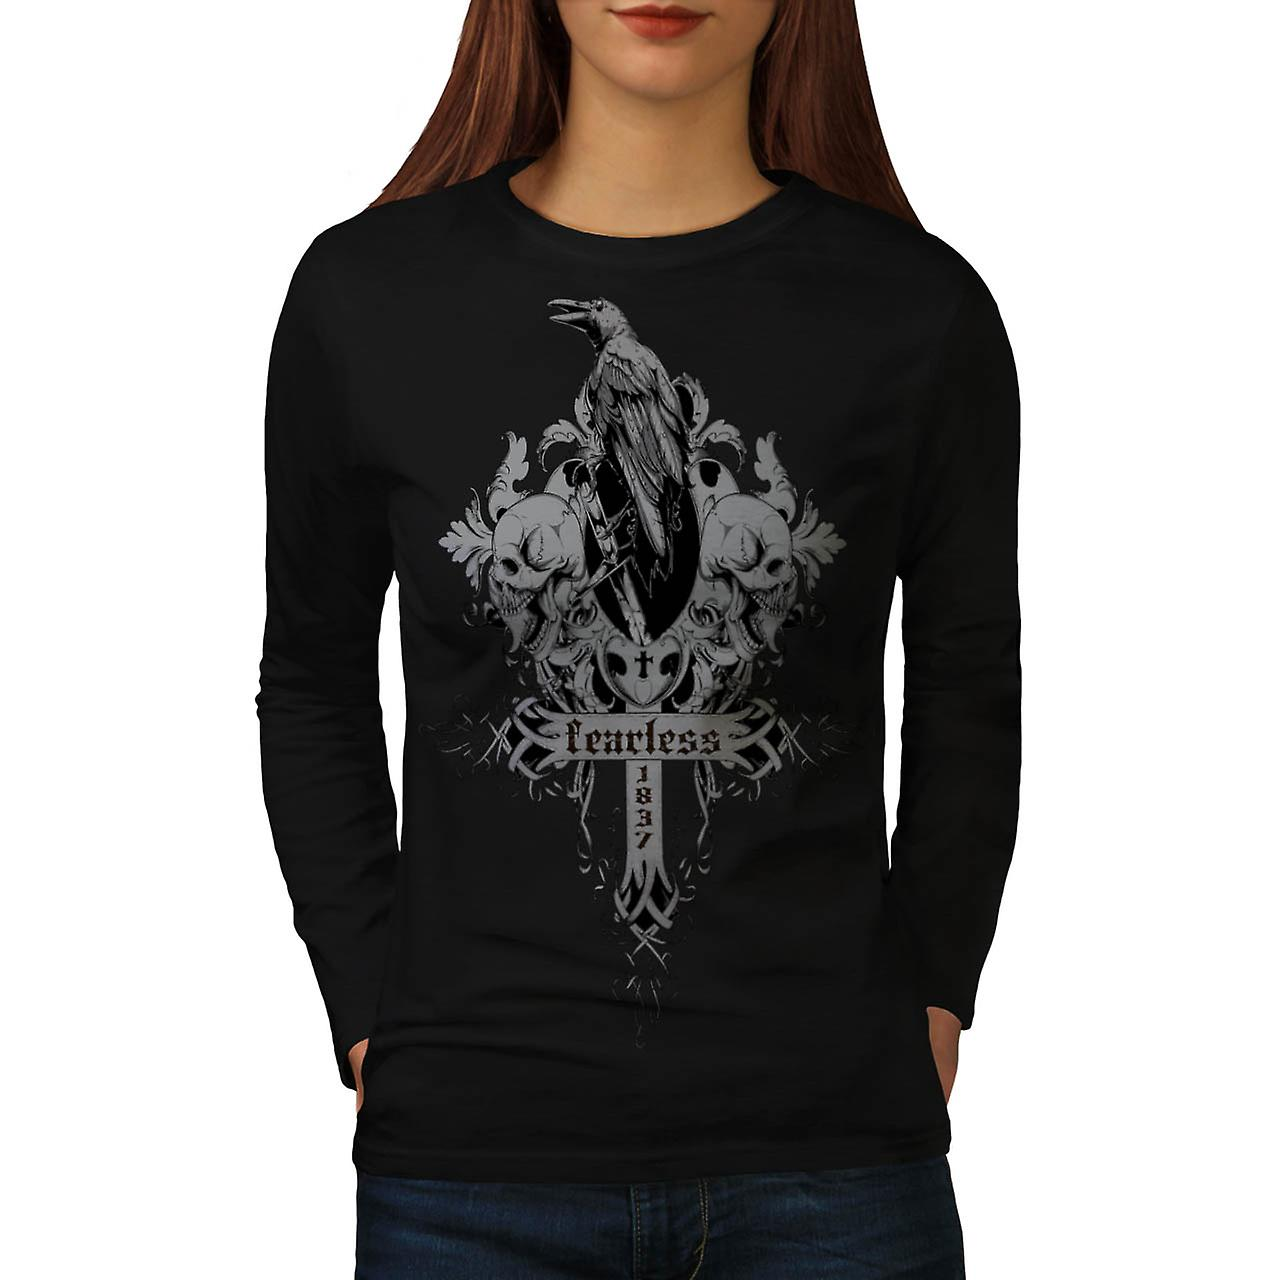 Fearless Death Crow Grave Yard Women Black Long Sleeve T-shirt | Wellcoda